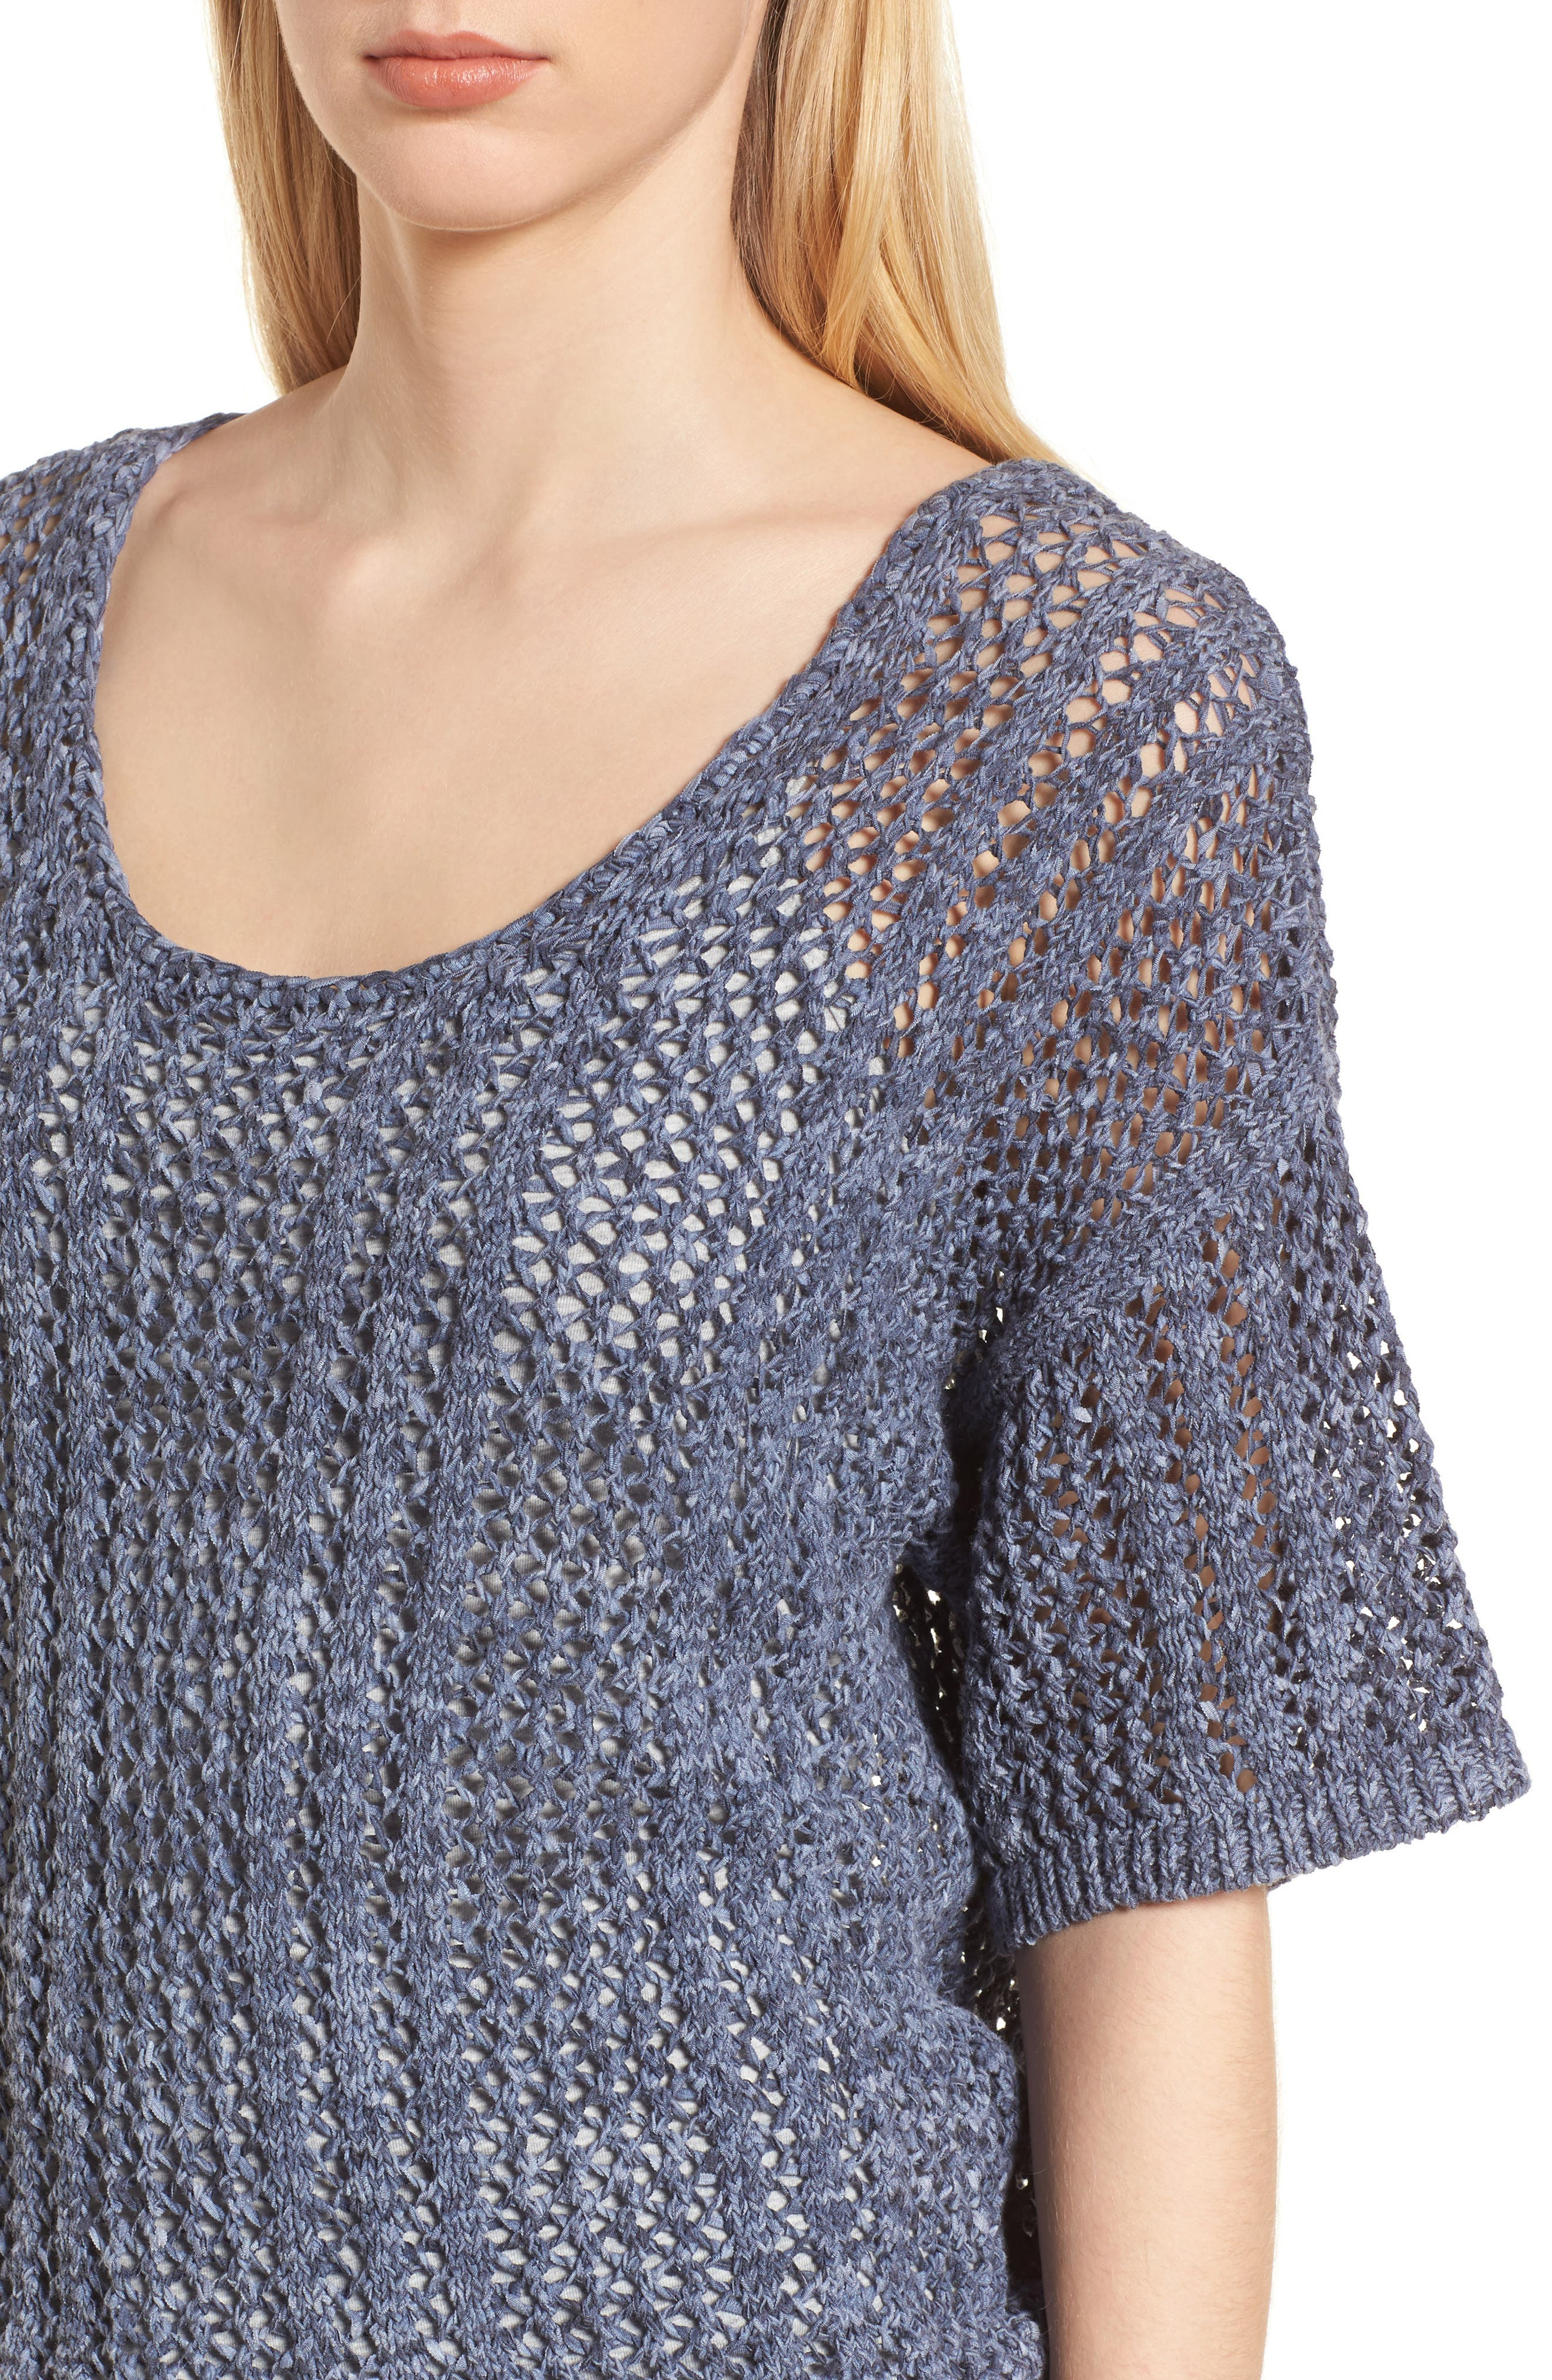 Knox Crochet Sweater,                             Alternate thumbnail 4, color,                             Navy